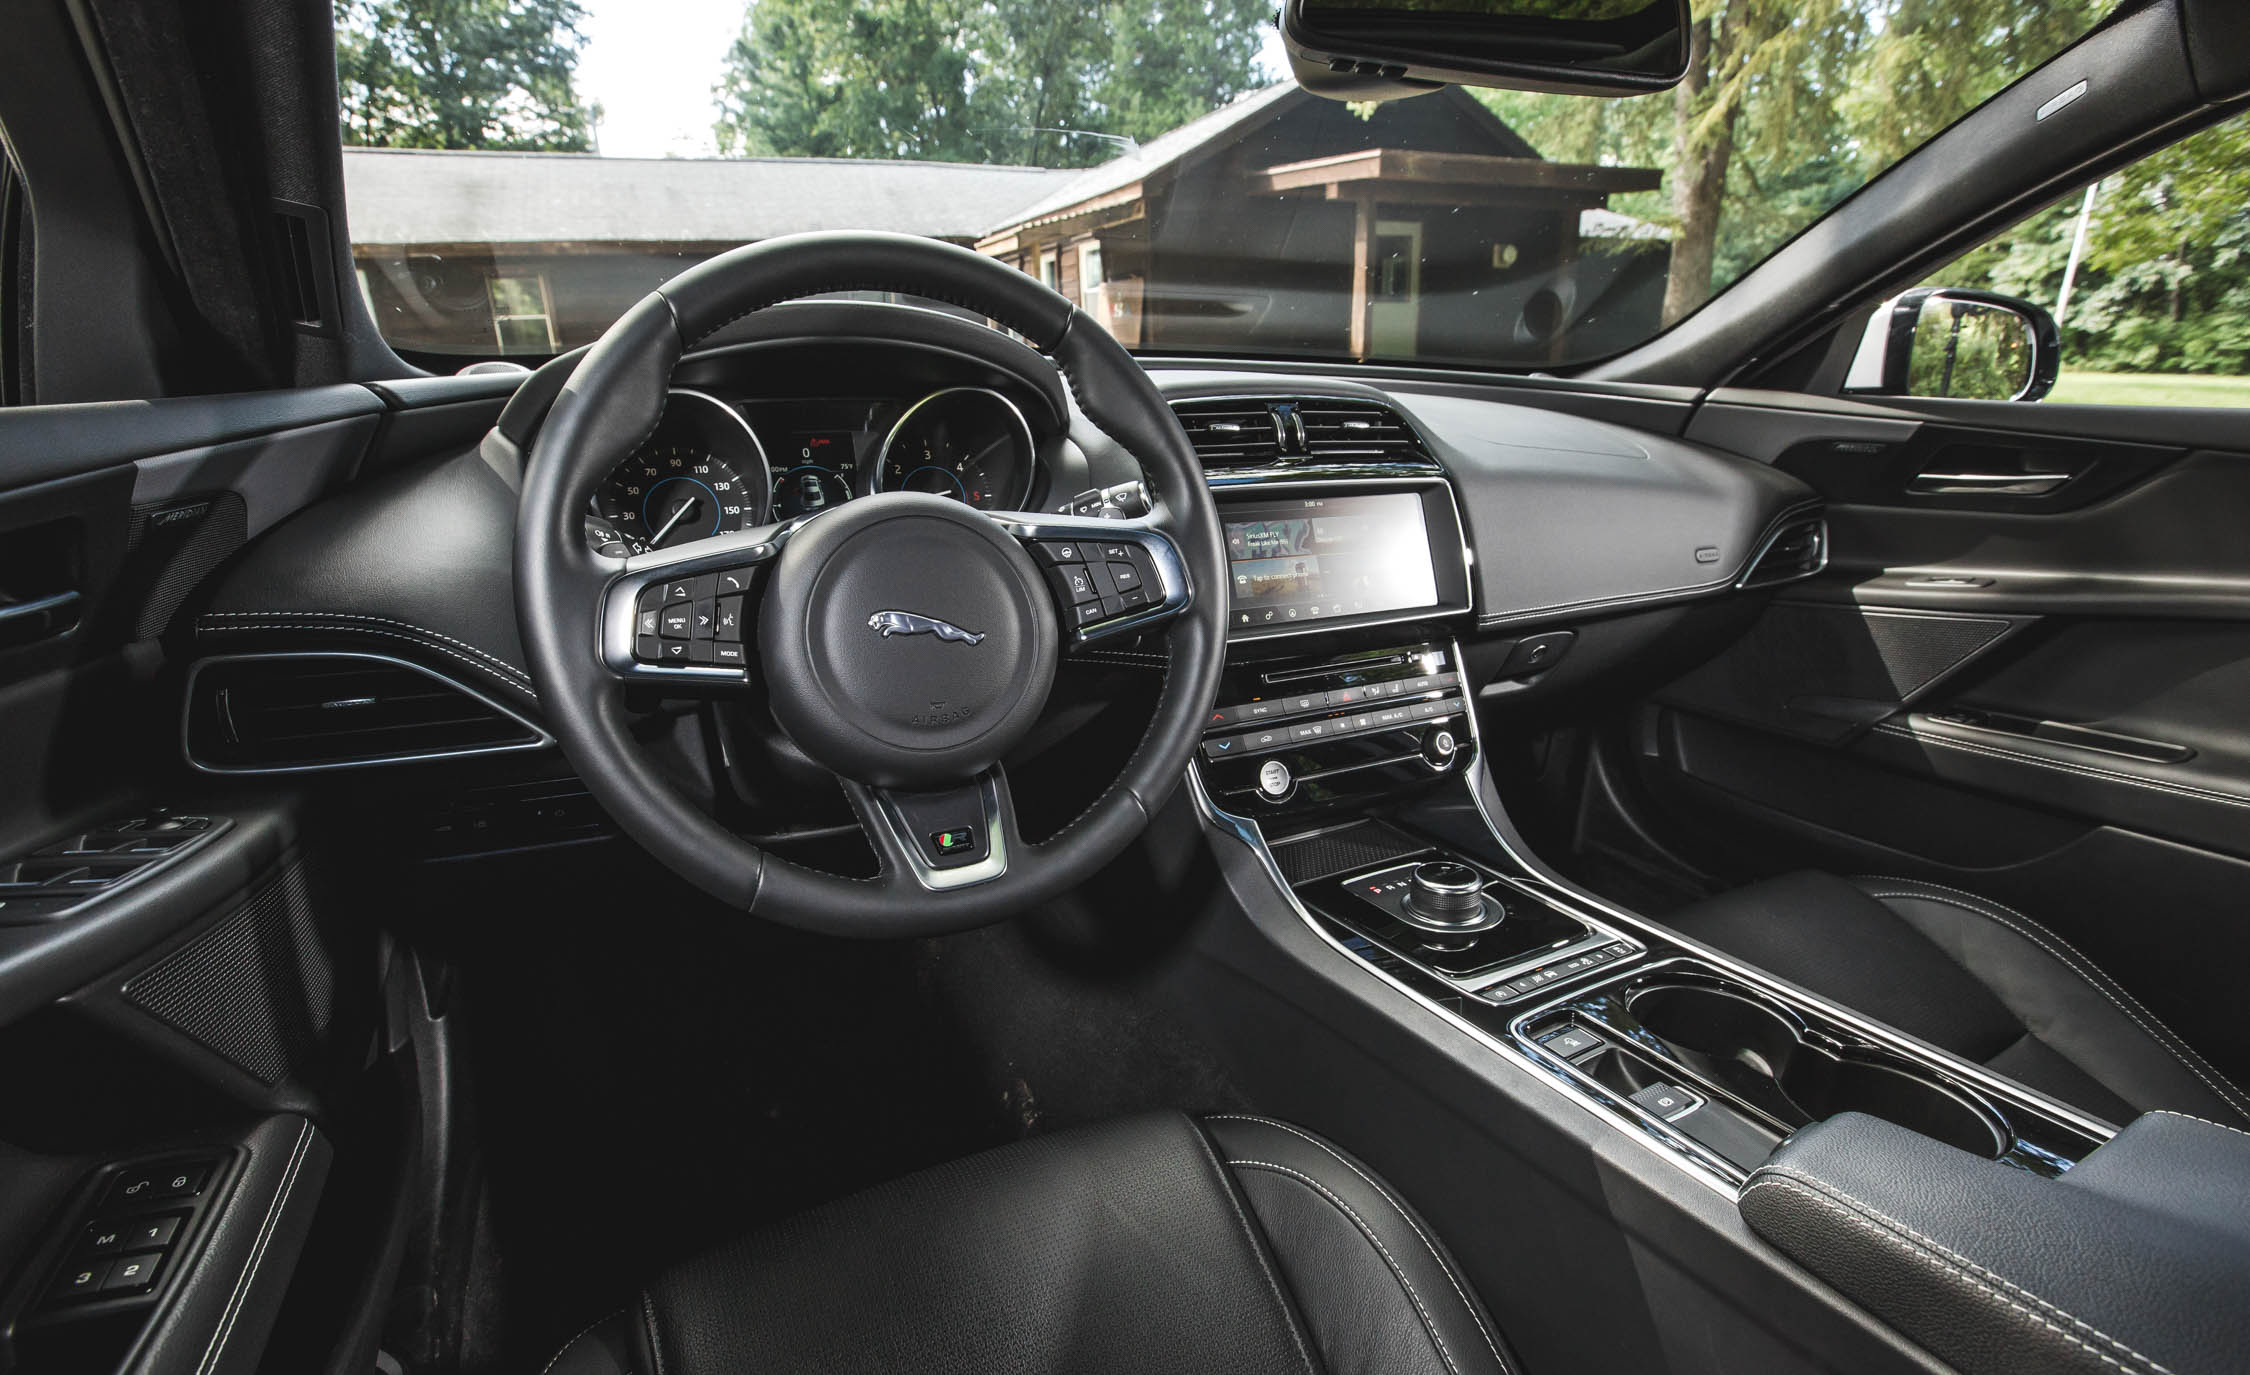 2017 Jaguar Xe Interior Cockpit Steering And Dash (Photo 8 of 32)